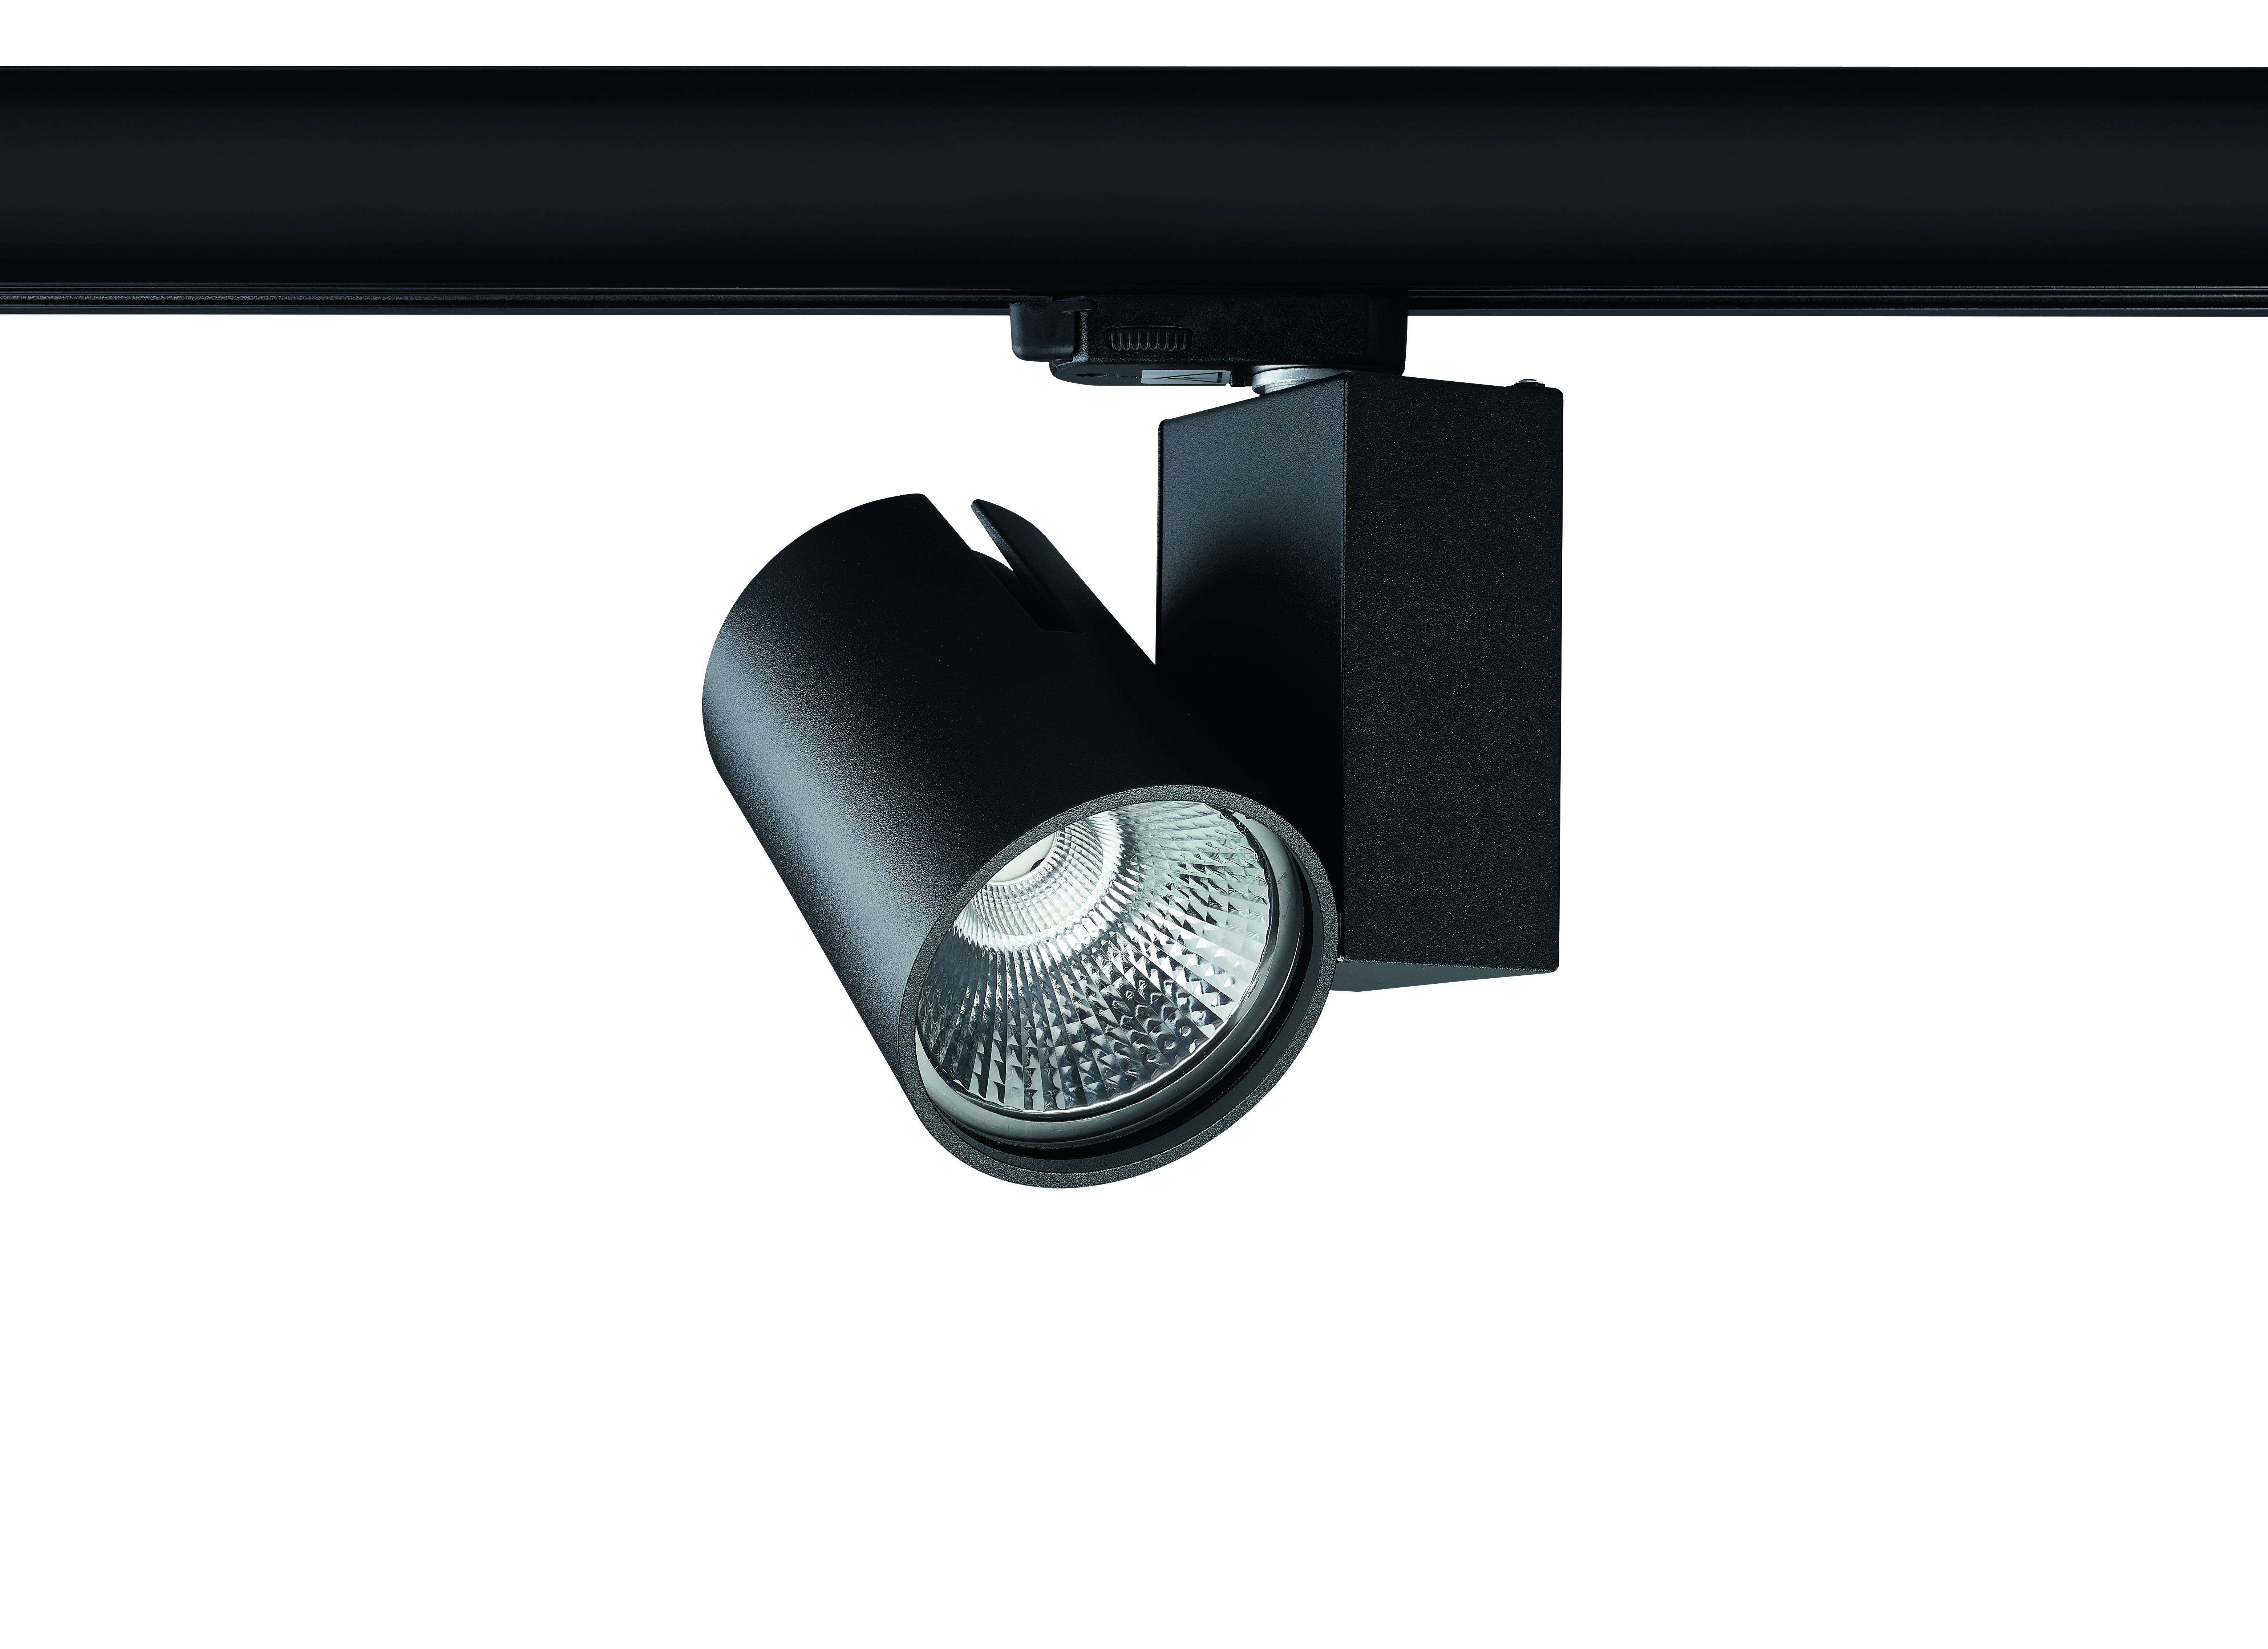 track lighting solutions. Product Image For 0004838 Track Lighting Solutions